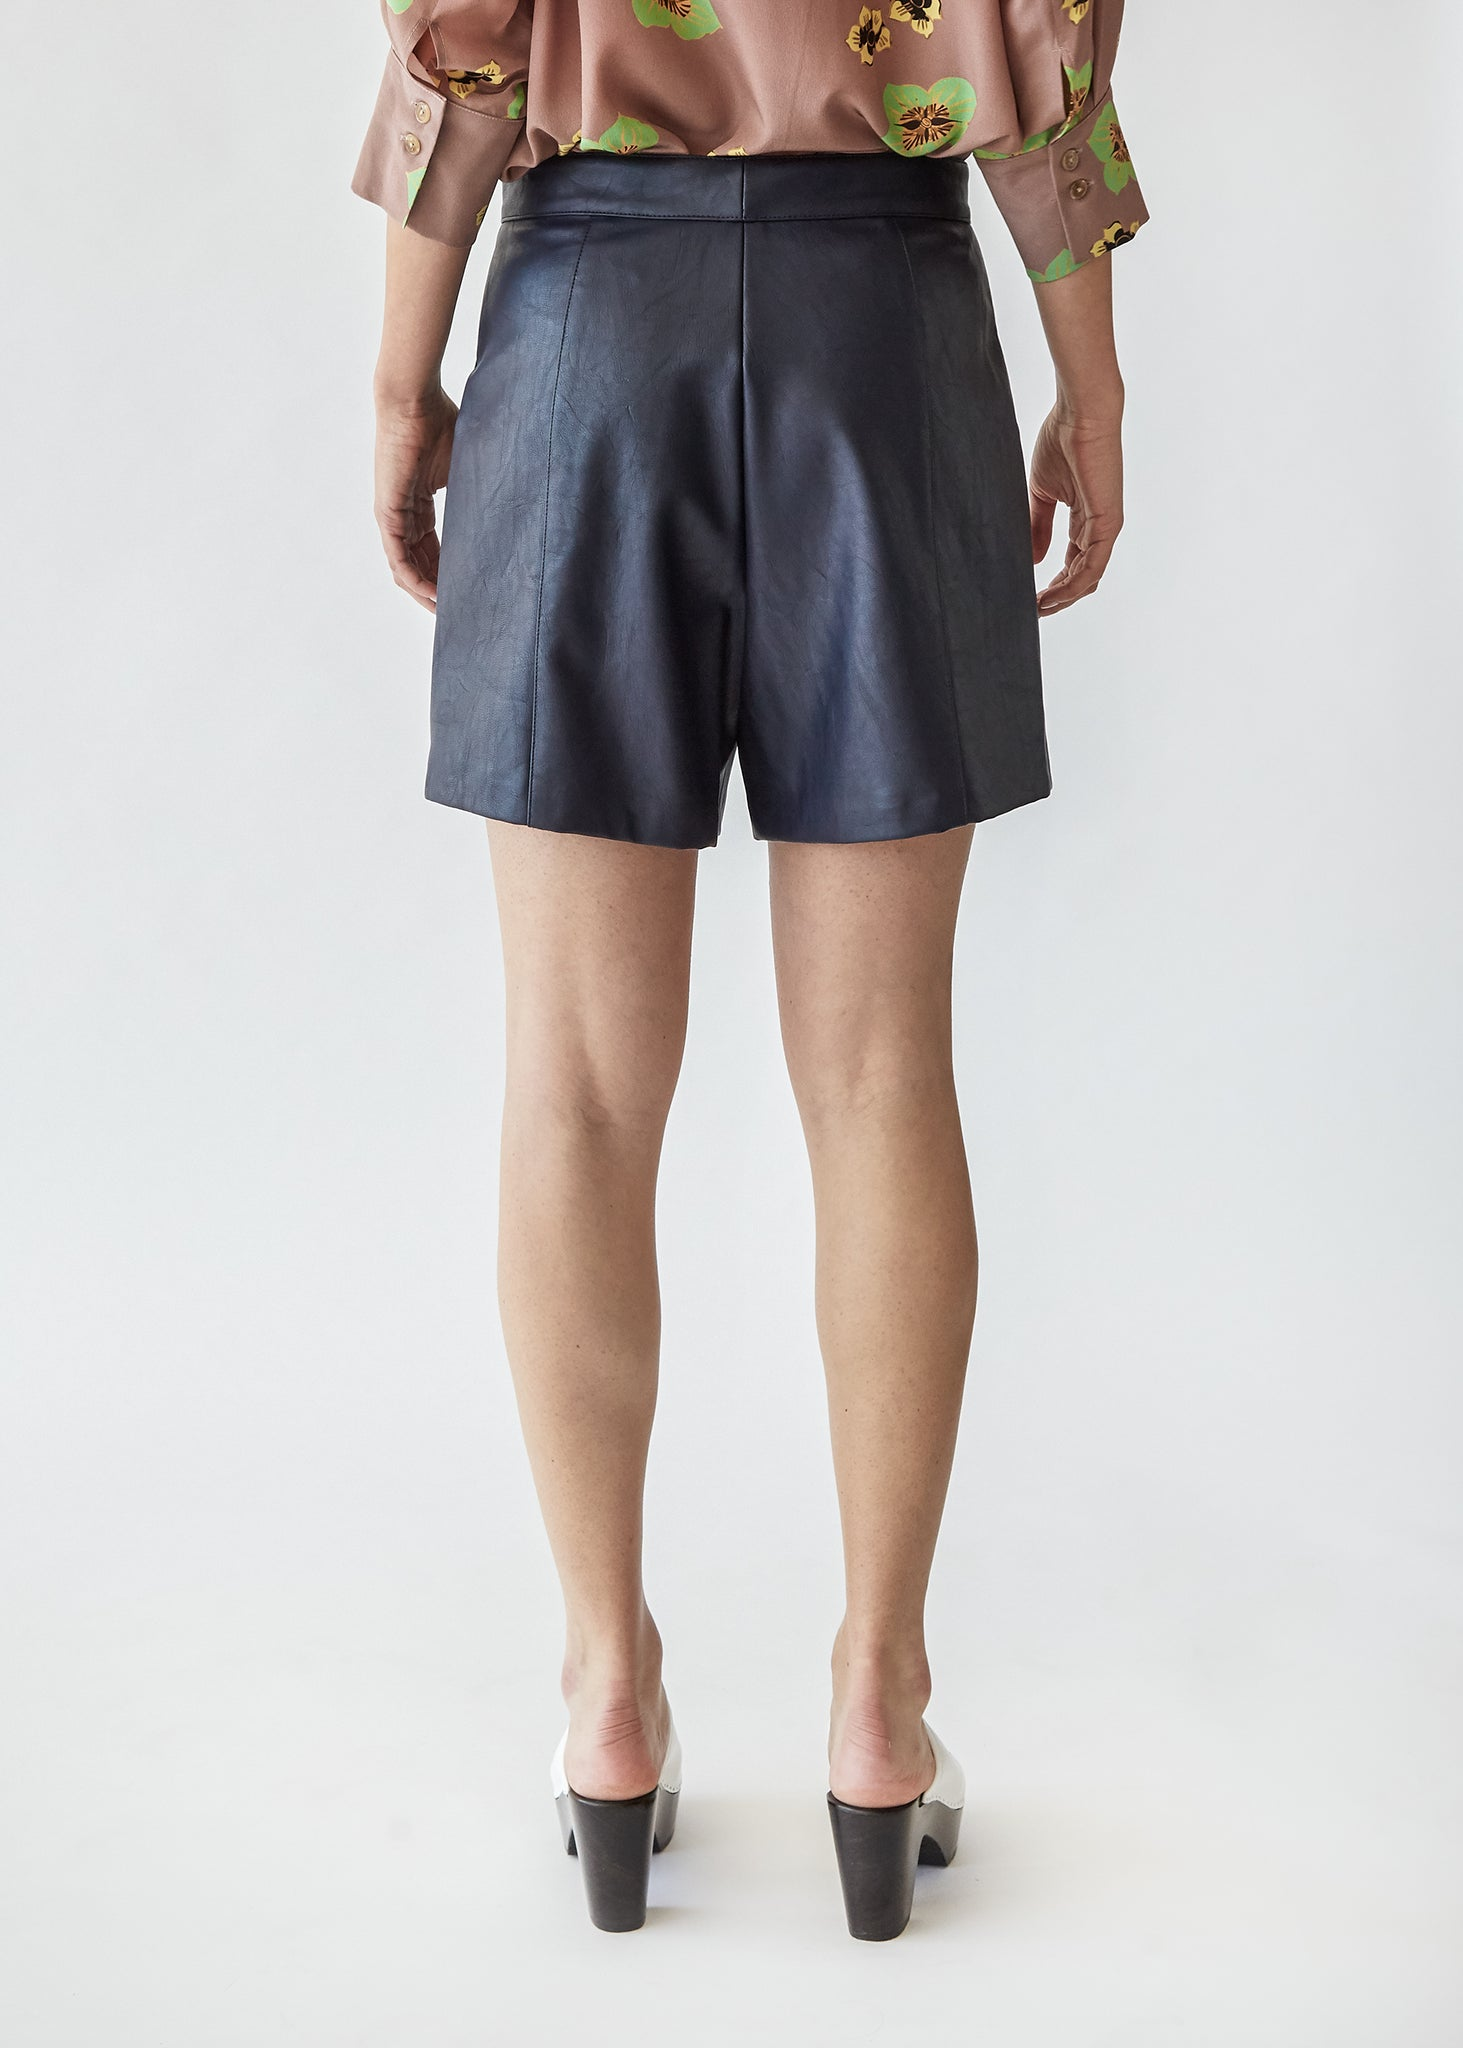 Annika Pleated Short in Navy